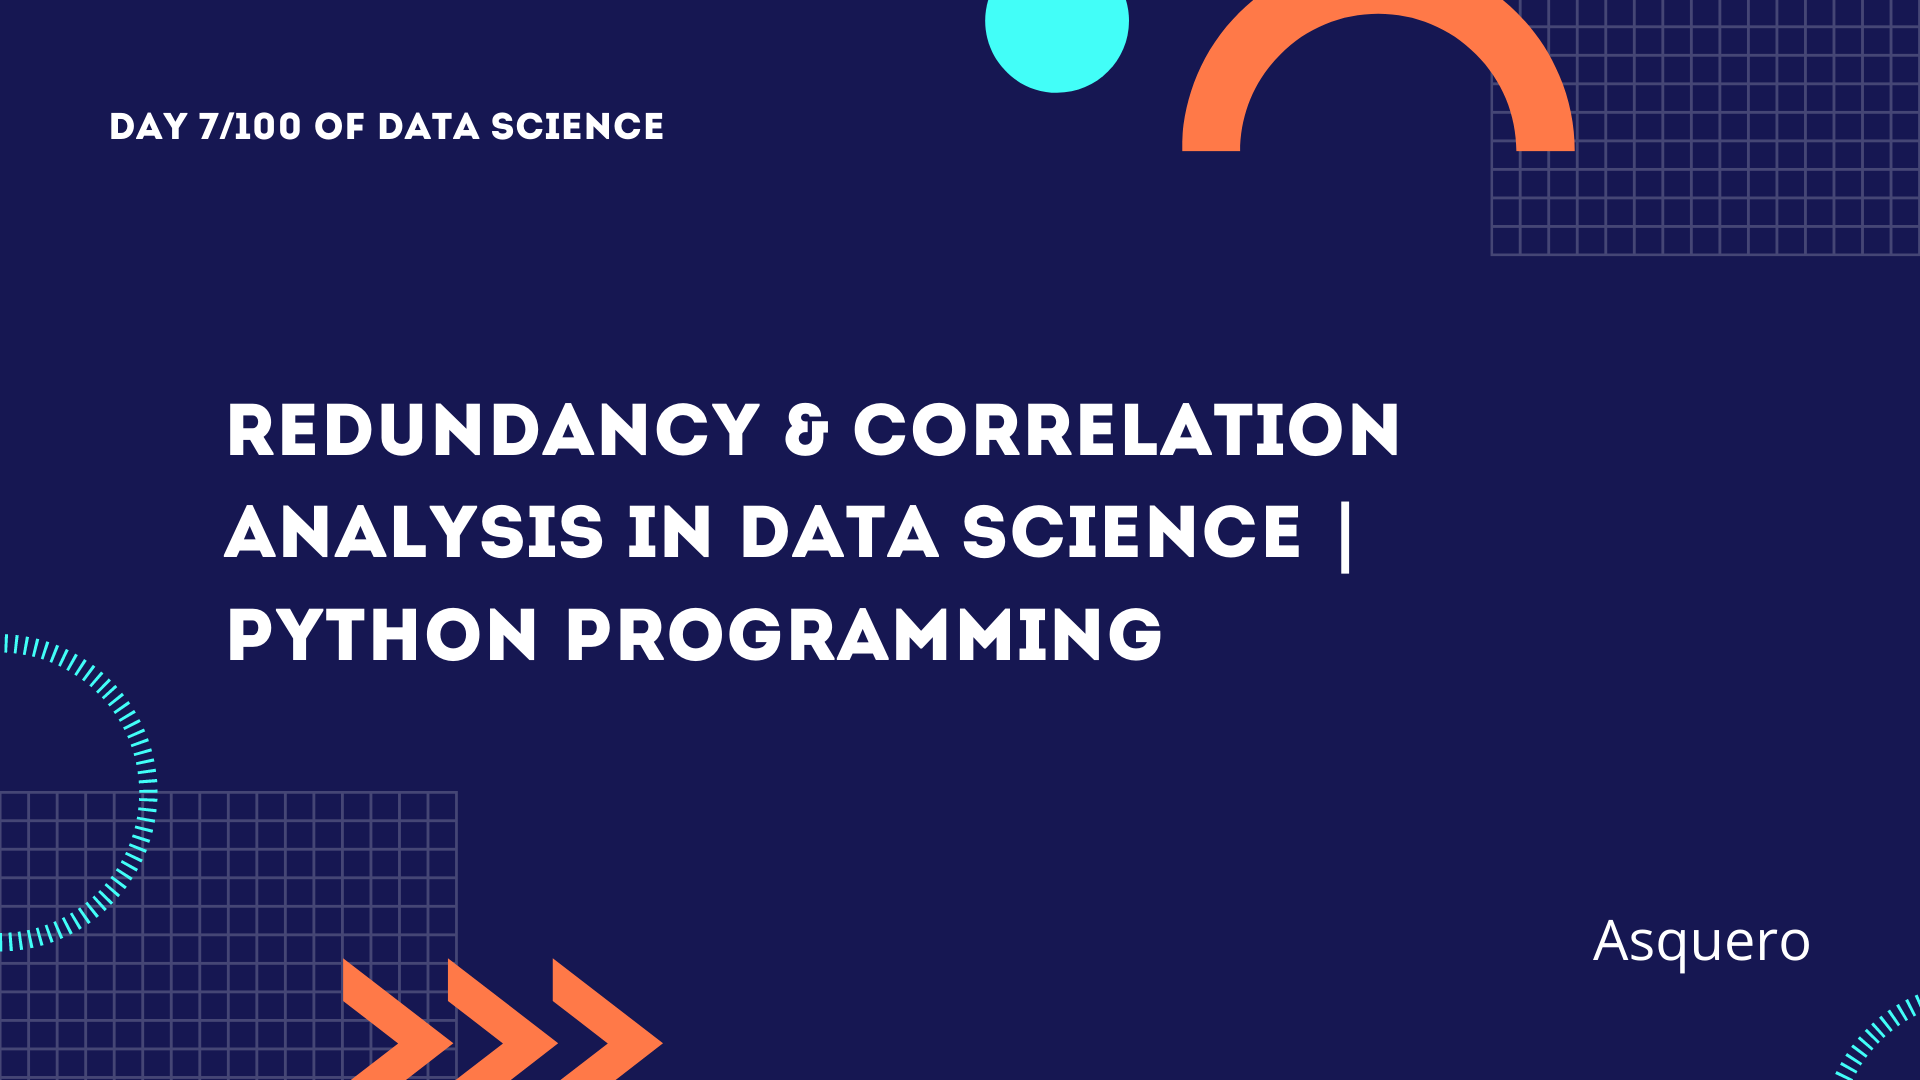 Redundancy & Correlation Analysis in Data Science | Python Programming